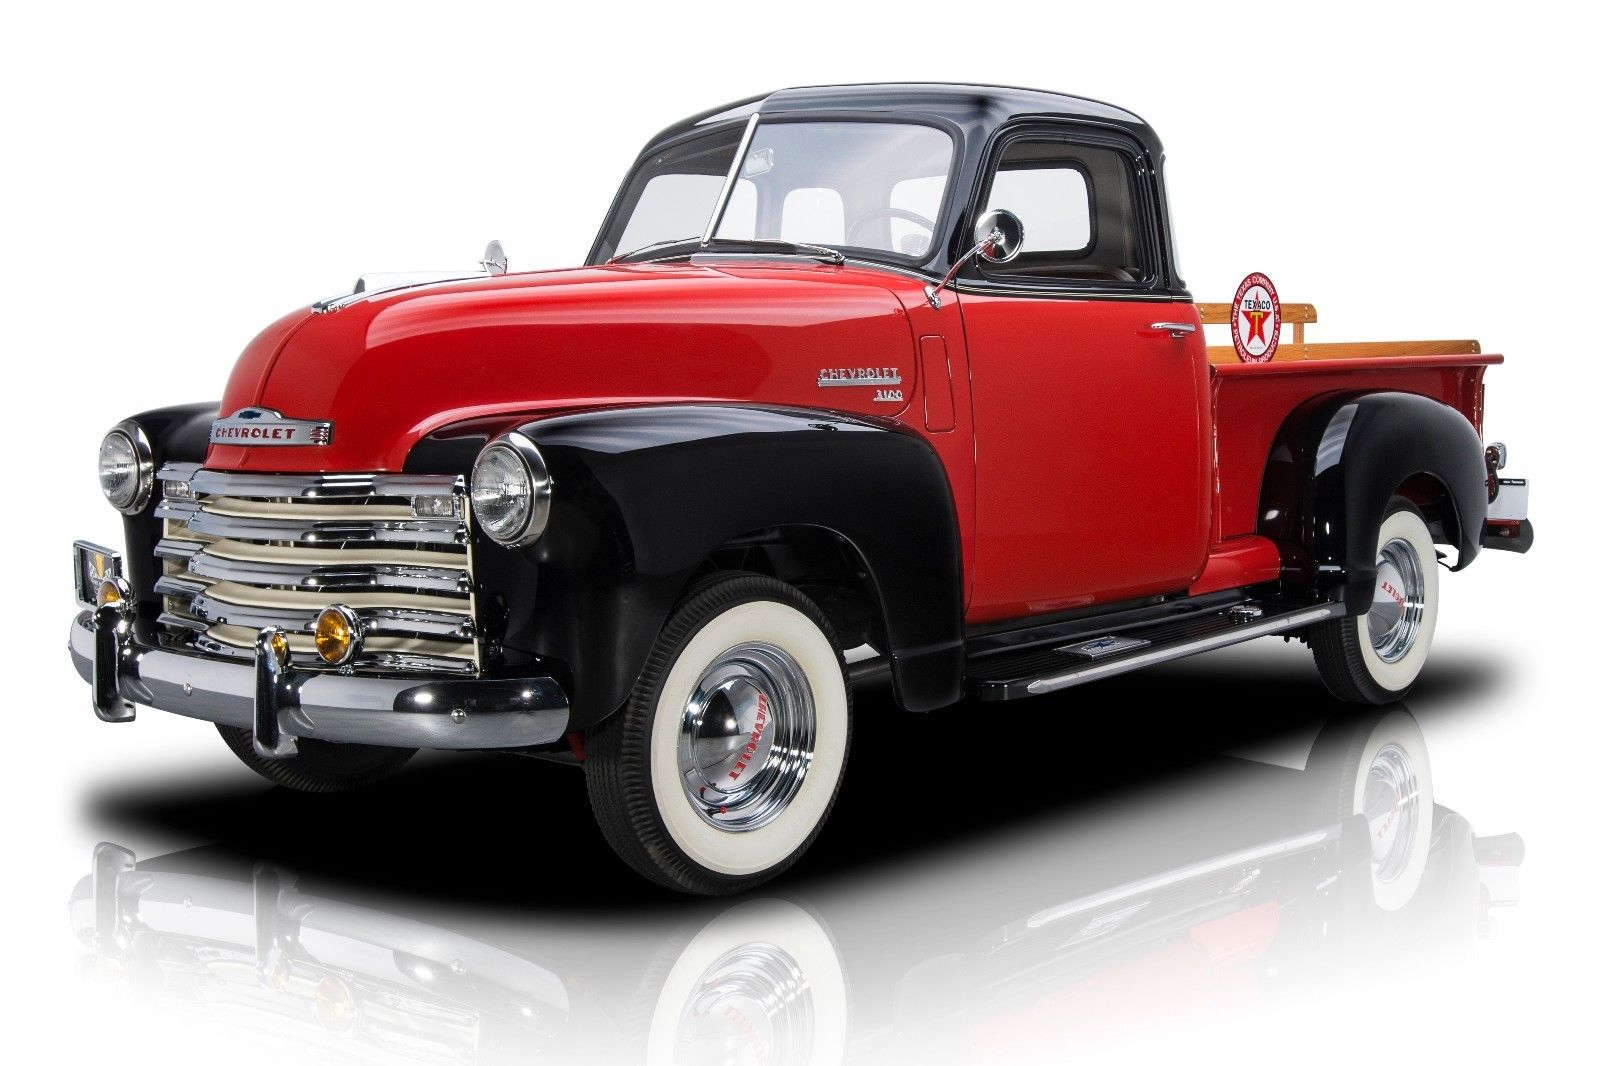 1951 Chevy Truck 2019 2020 Top Car Release Date Chevrolet Sedan Delivery Restored 1949 Pickup Vintage For Sale